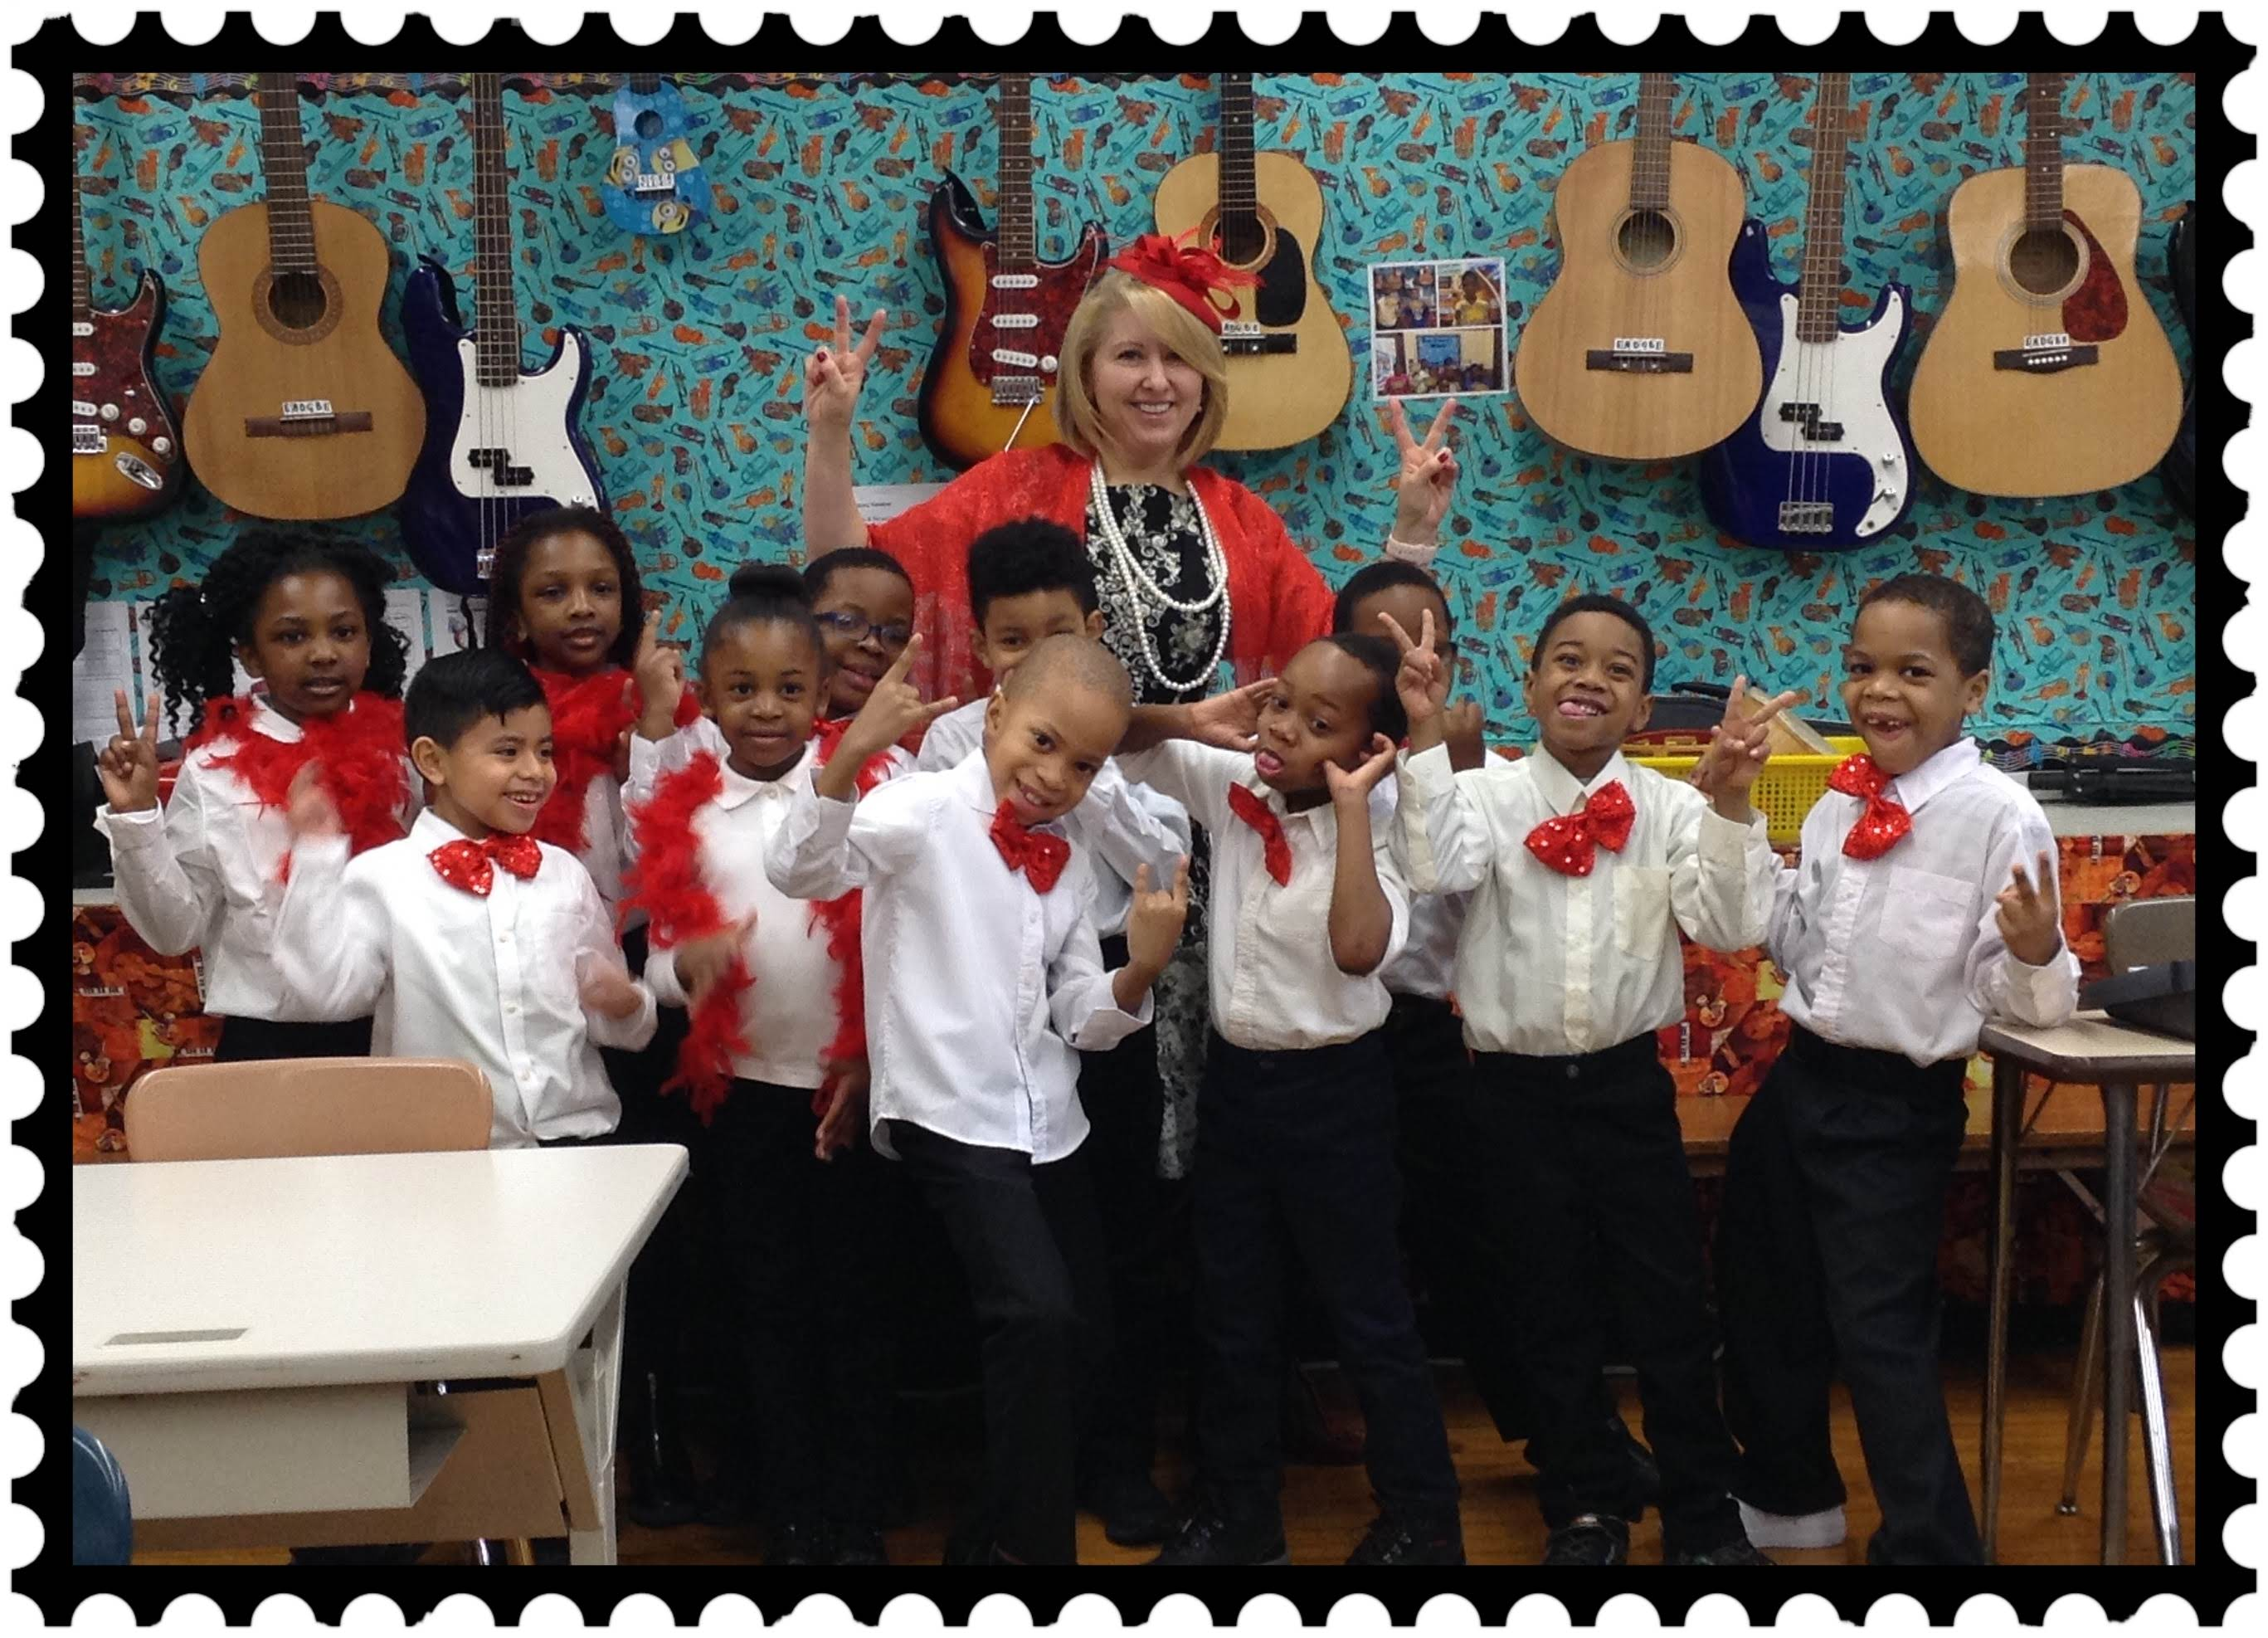 Ms. Grechko and students in red and white